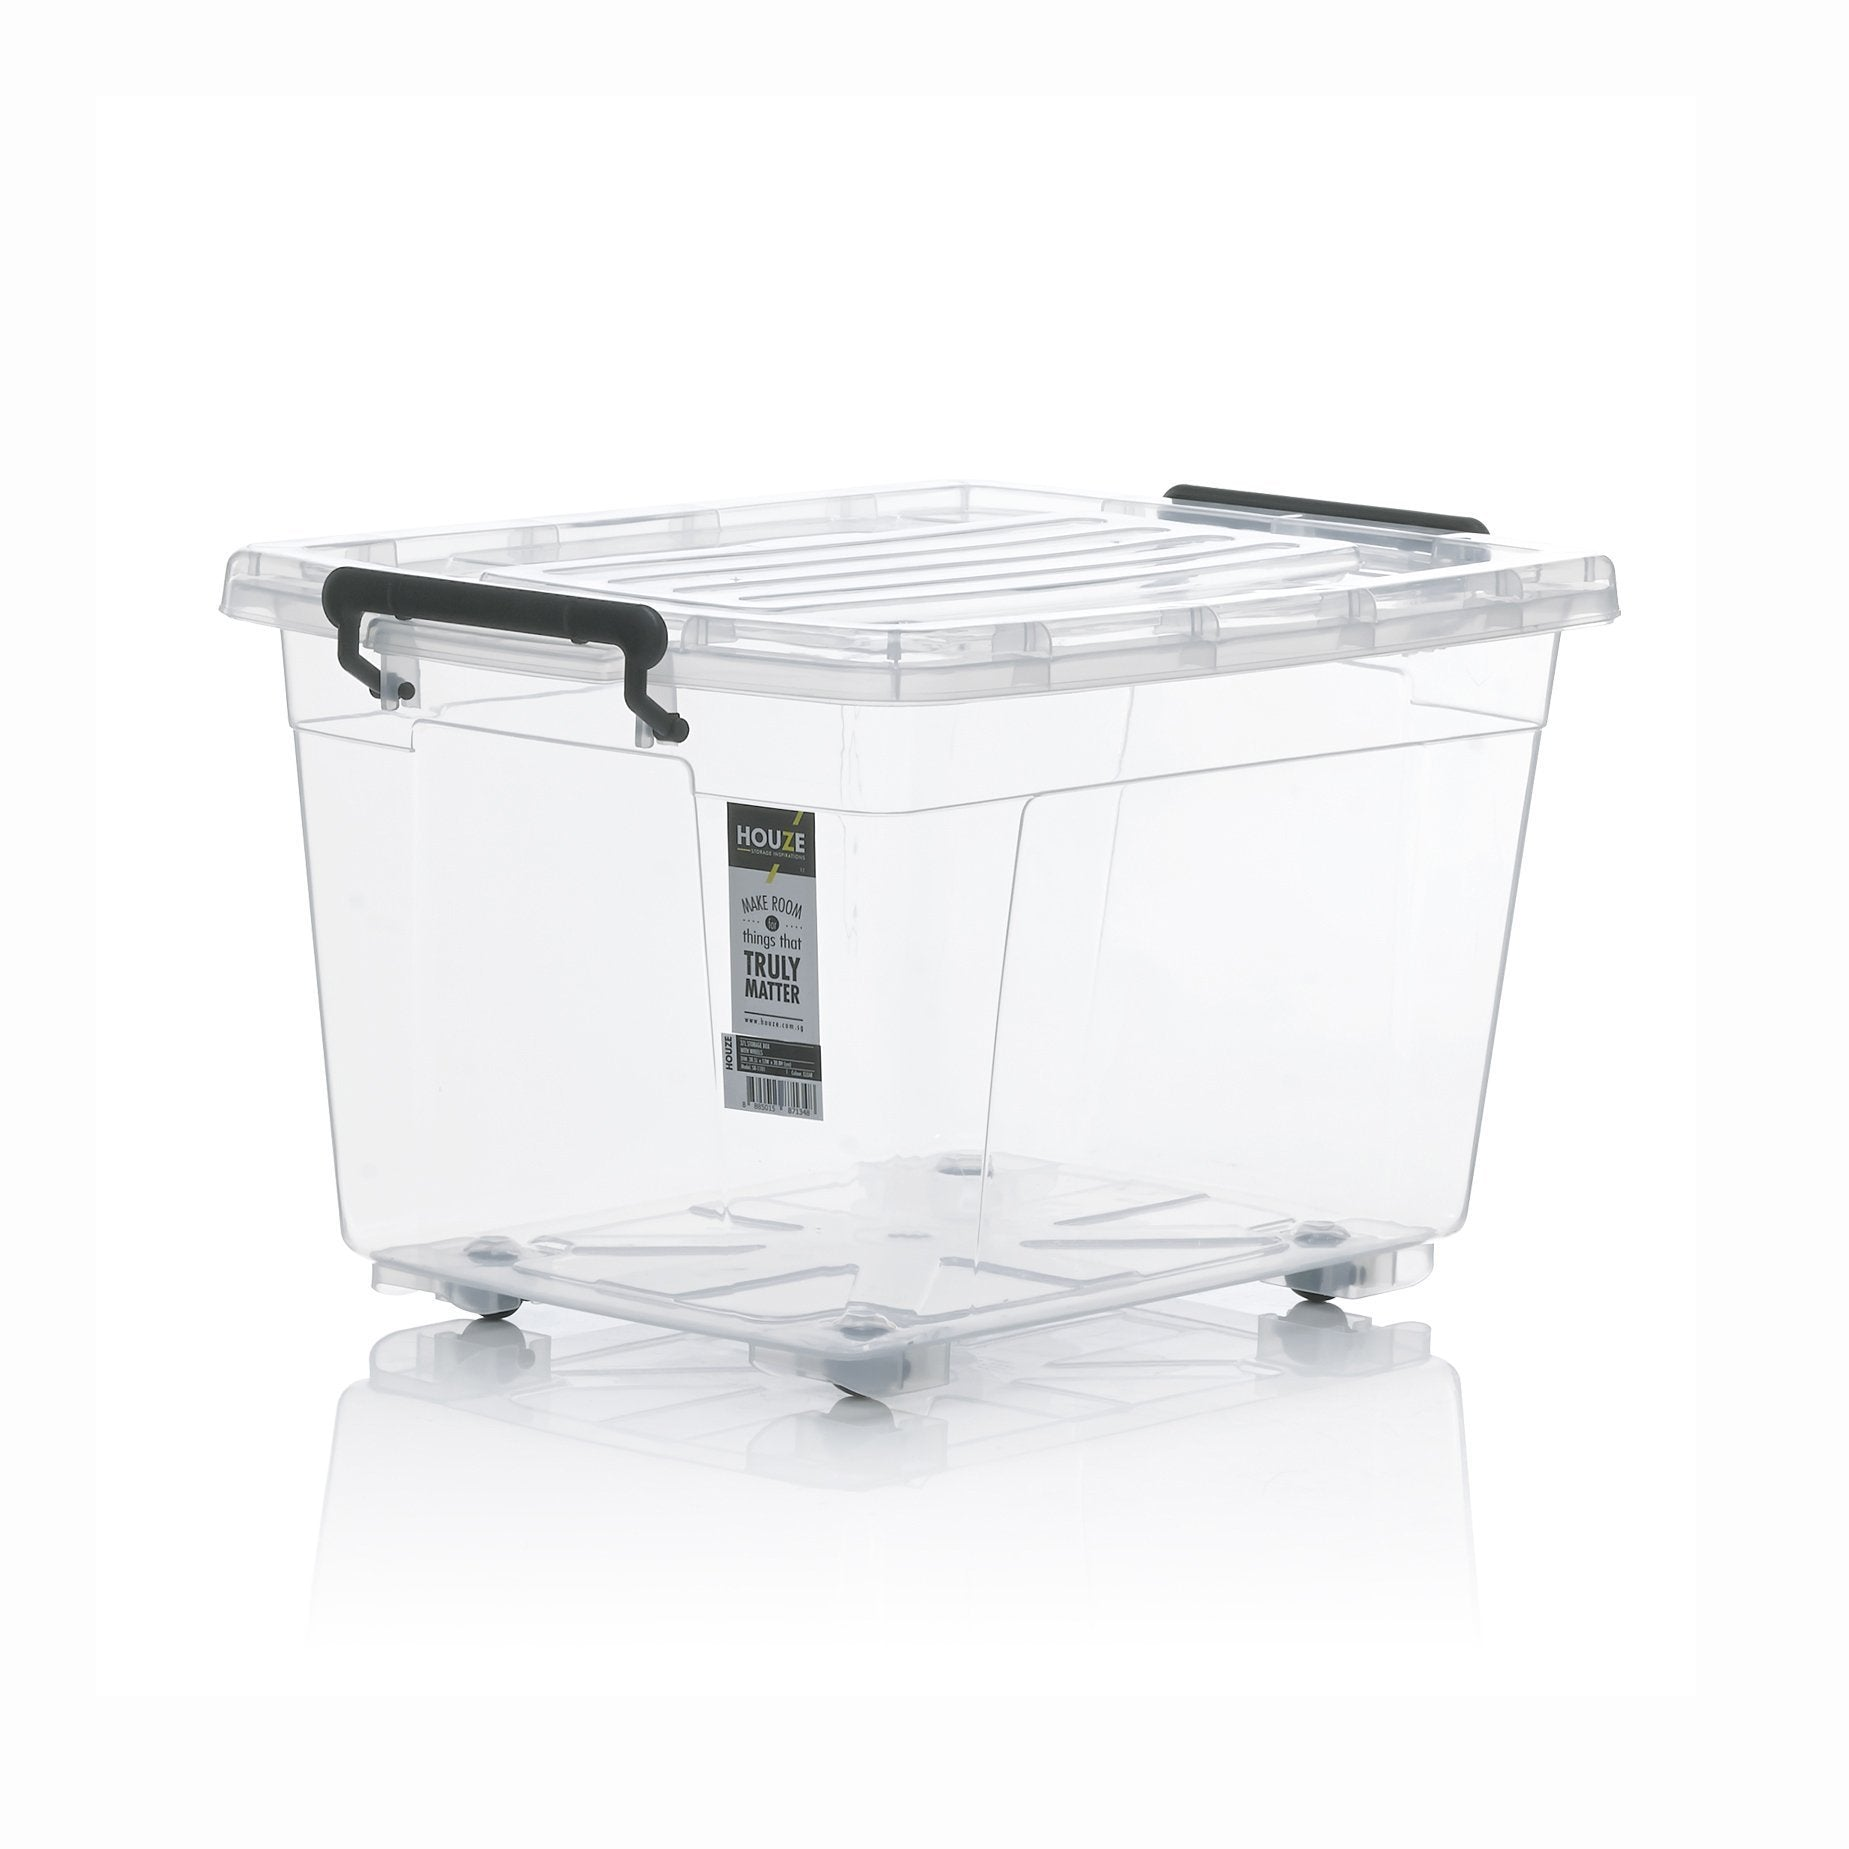 HOUZE 77L Storage Box with Wheels - HOUZE - The Homeware Superstore